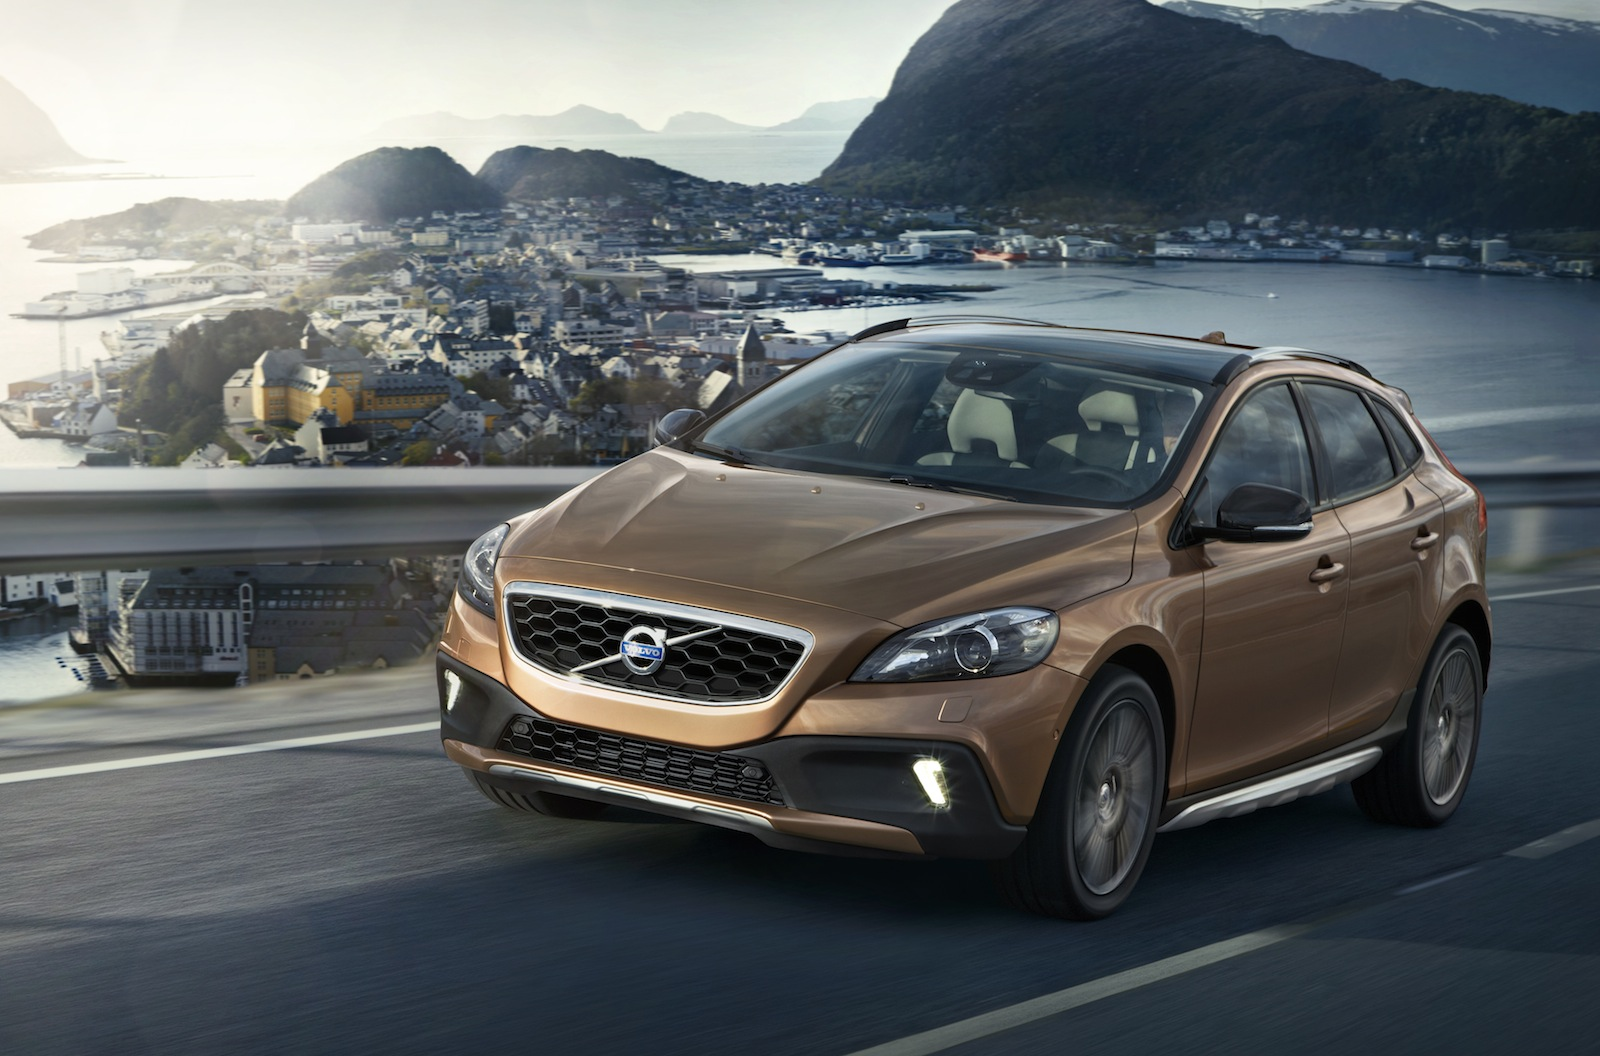 volvo v40 cross country likely for australia photos 1 of 16. Black Bedroom Furniture Sets. Home Design Ideas